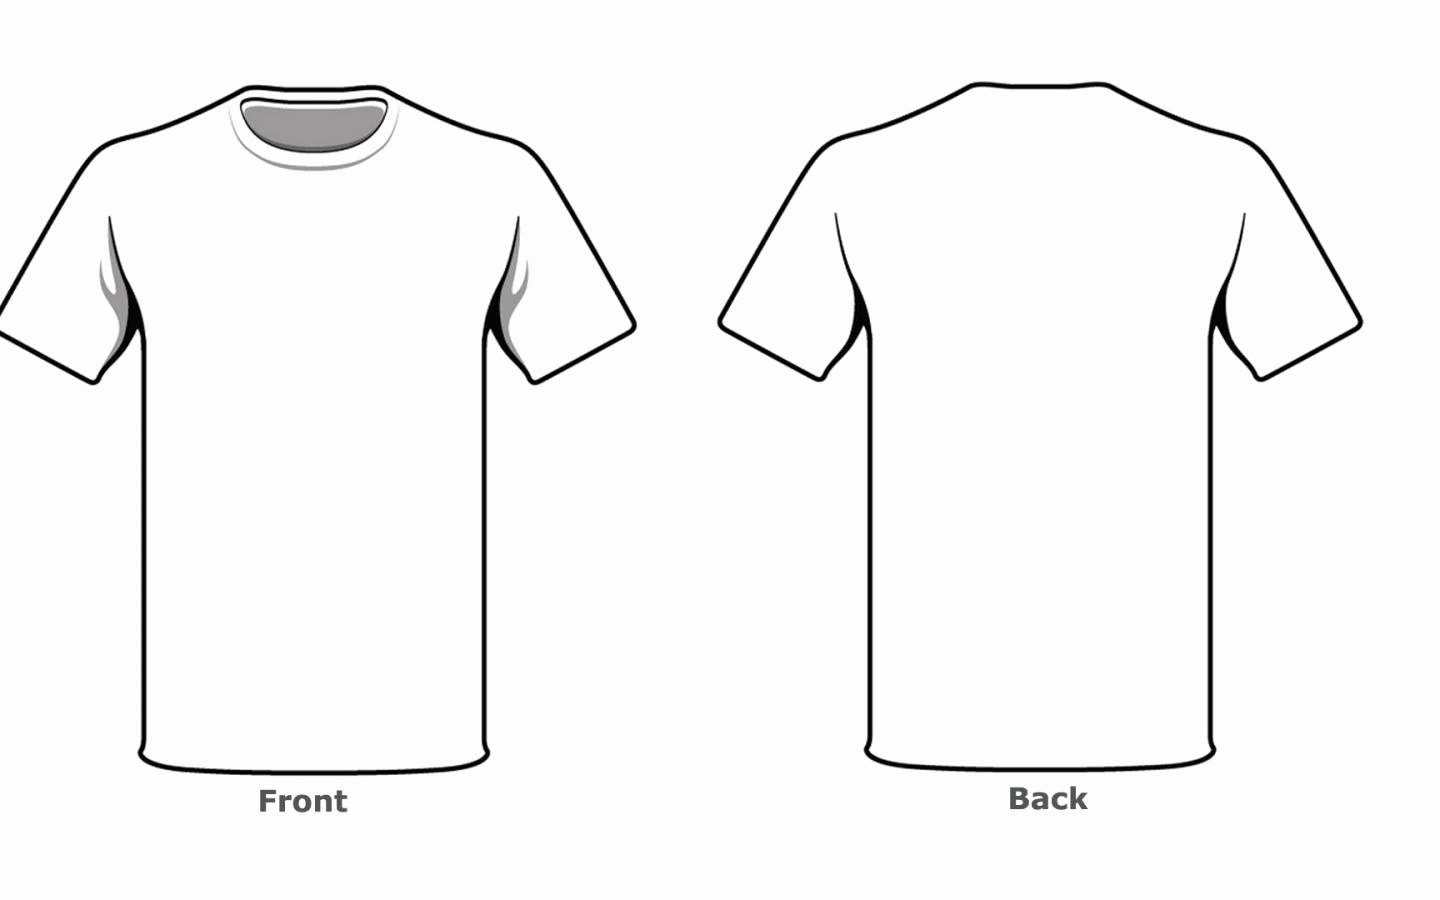 Blank Tshirt Template Luxury Blank Tshirt Template Front Back Side In High Resolution